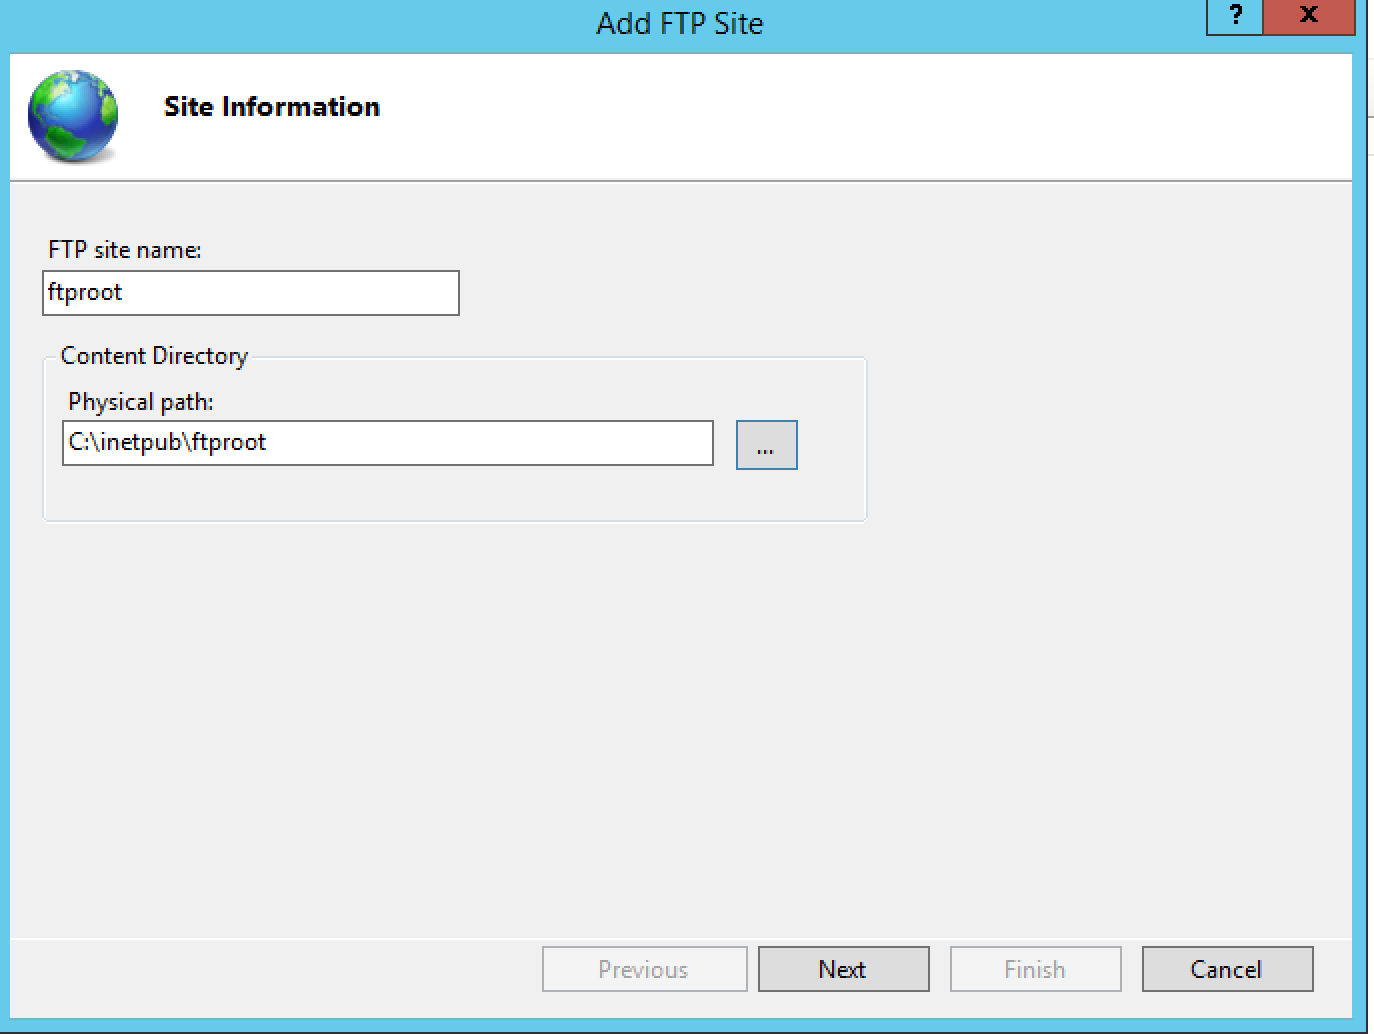 Configuring ftps ftp over ssl on windows 2012 r2 server select require ssl and your ssl certificate xflitez Image collections